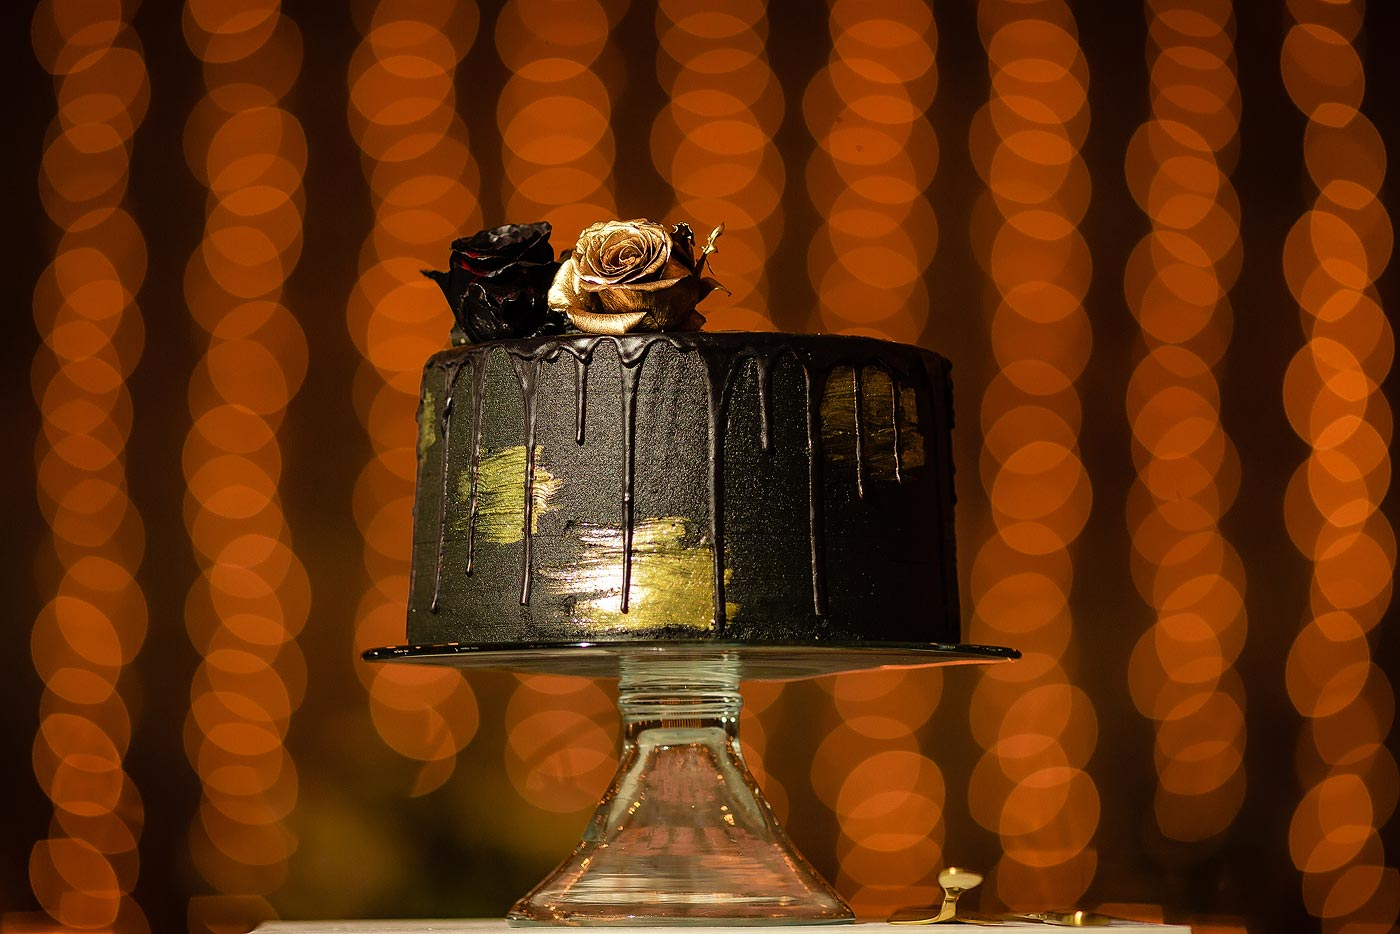 Black and gold wedding cake with gold details and fairy lights.